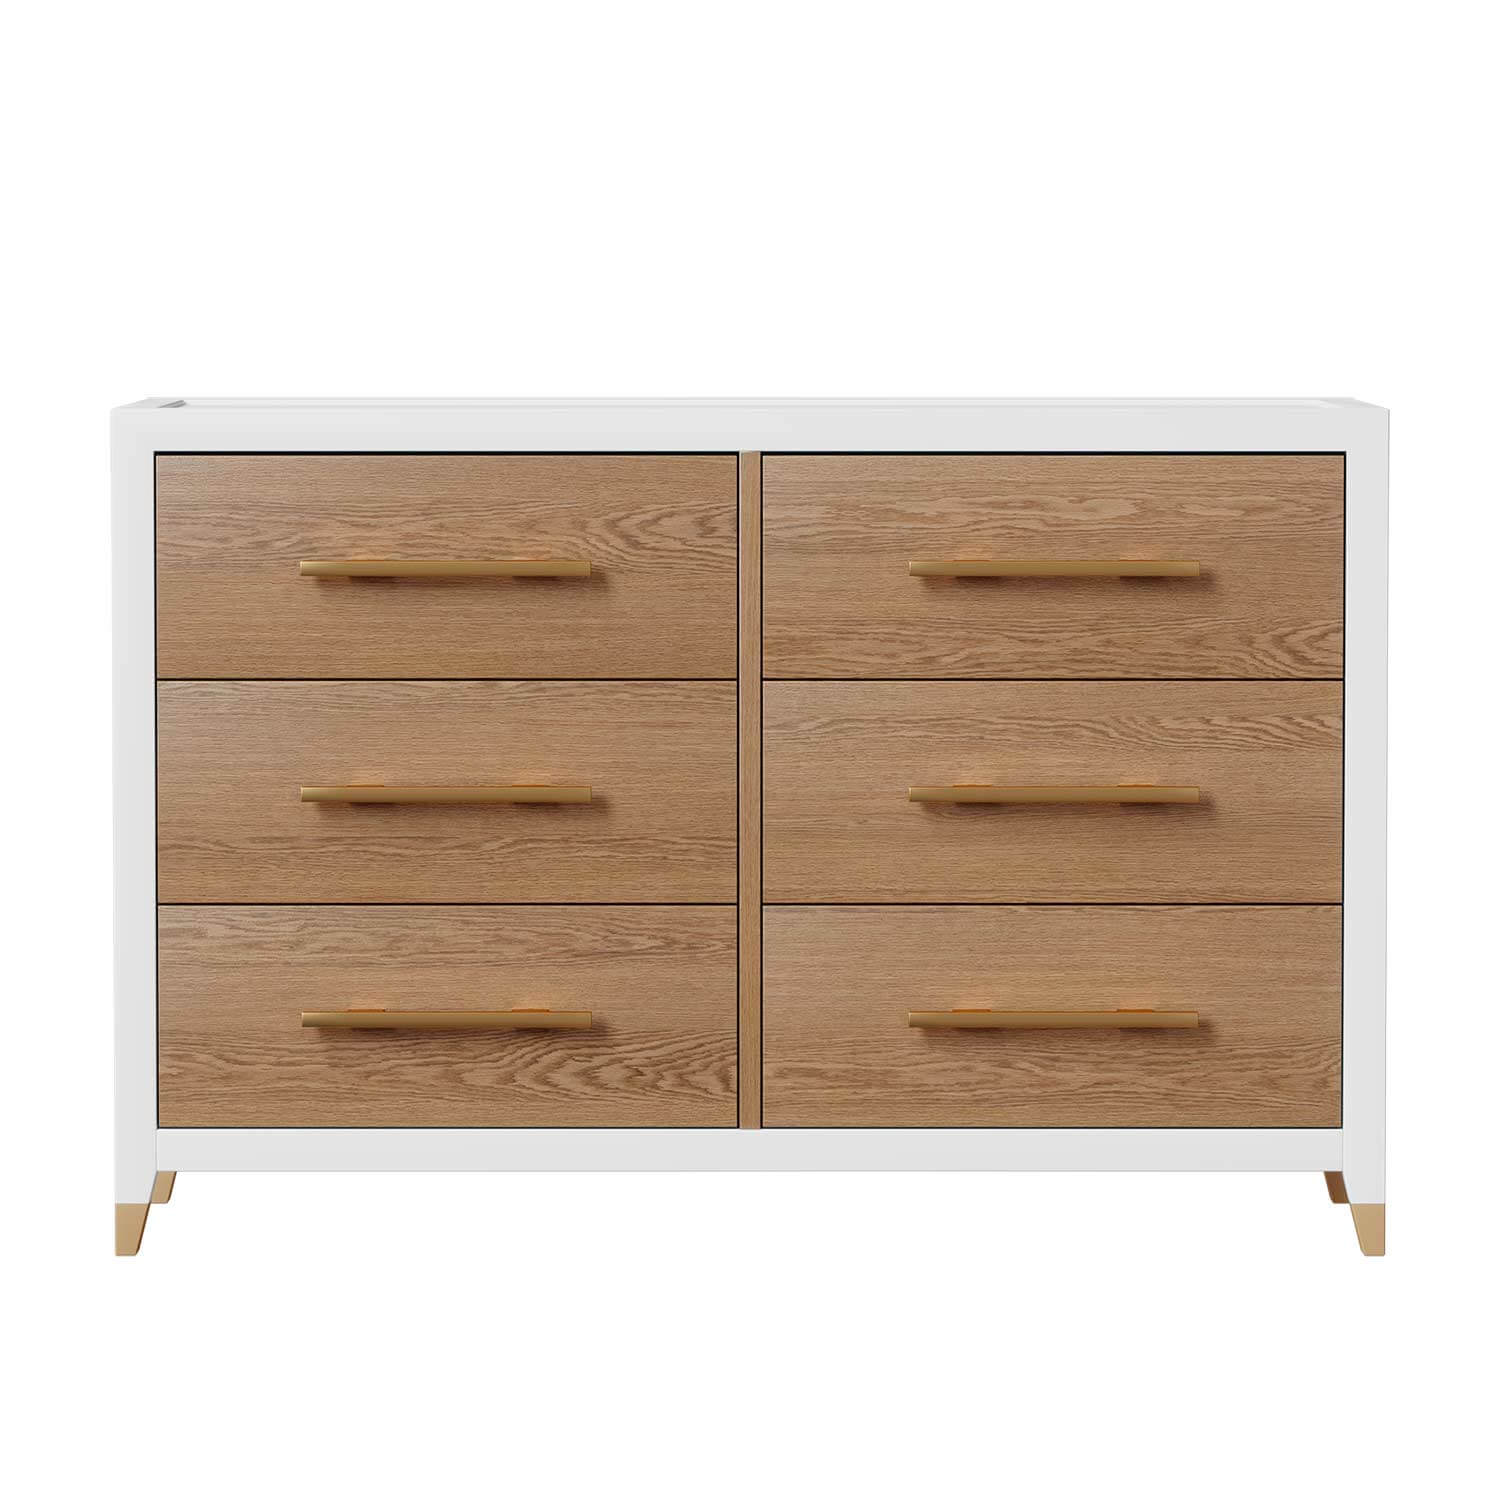 Chest-drawers-N2-Arnika-1